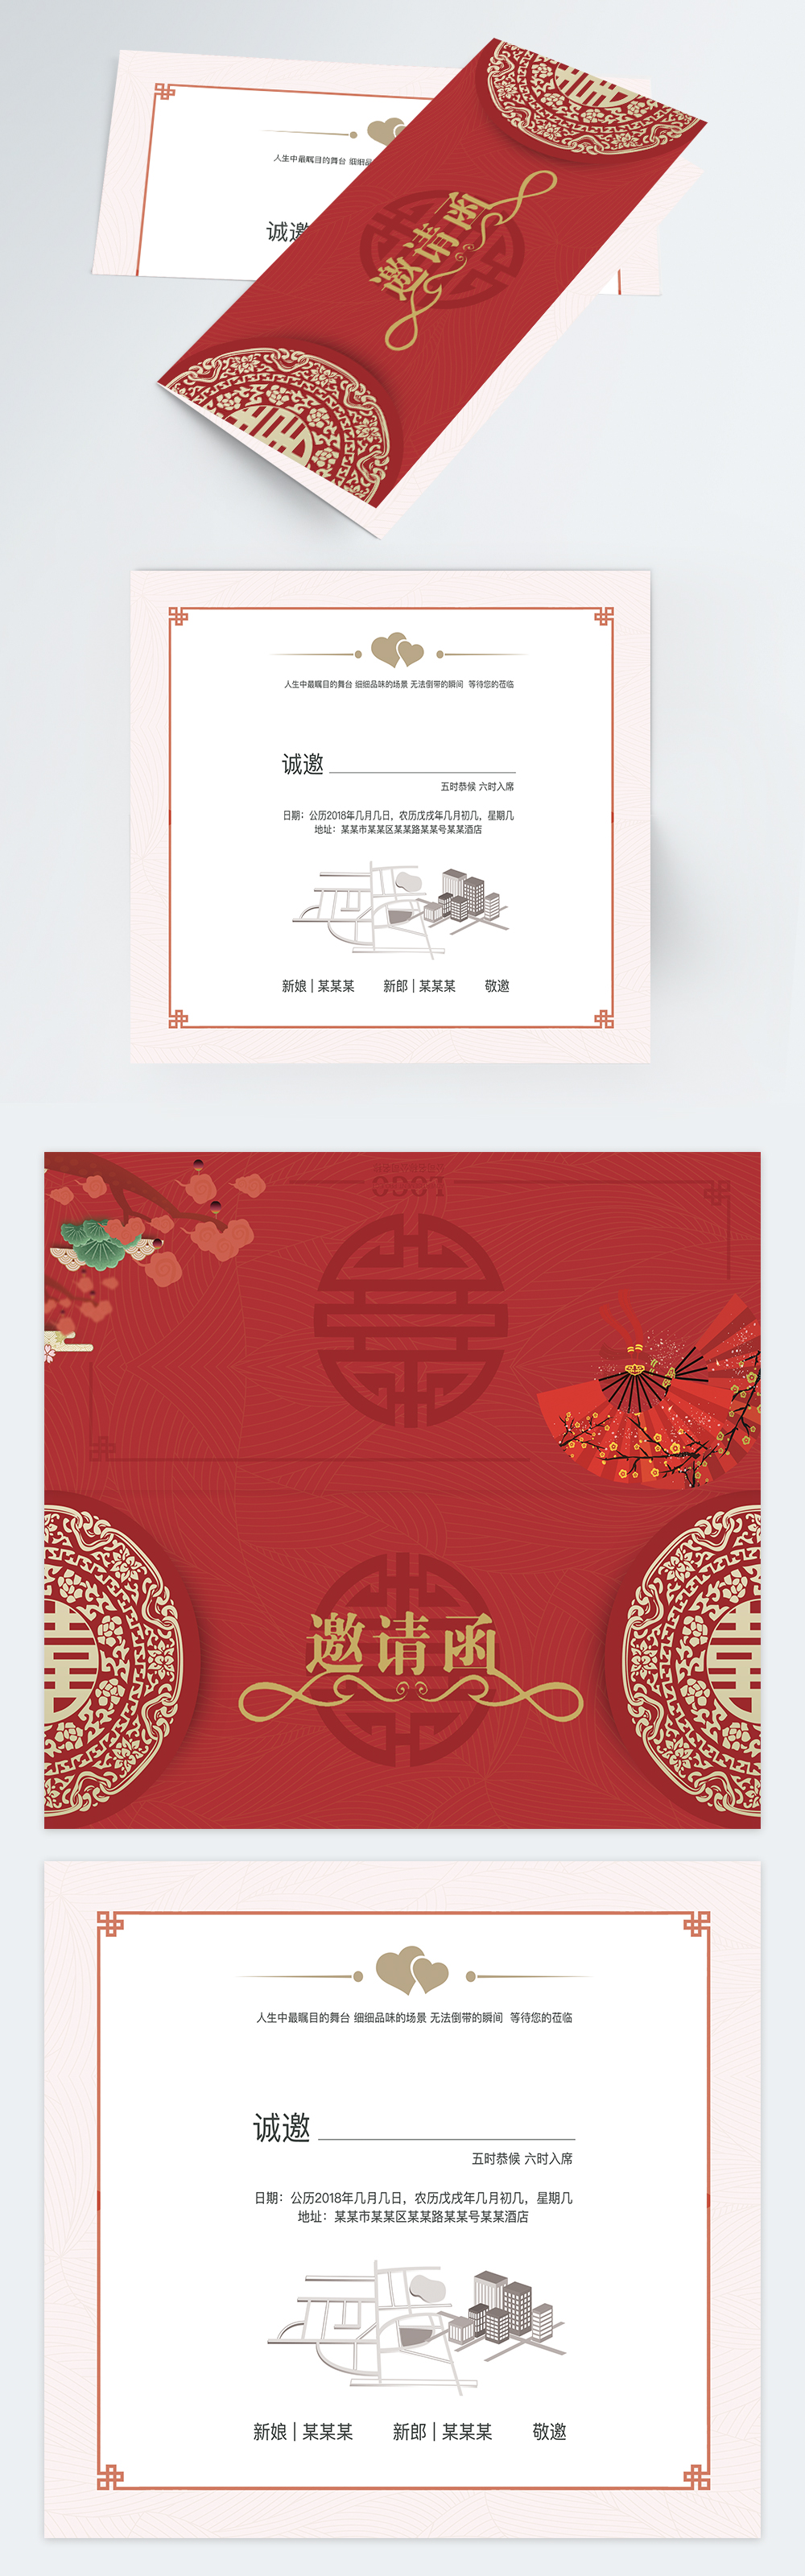 Invitation letter of red wedding wedding template image_picture free ...